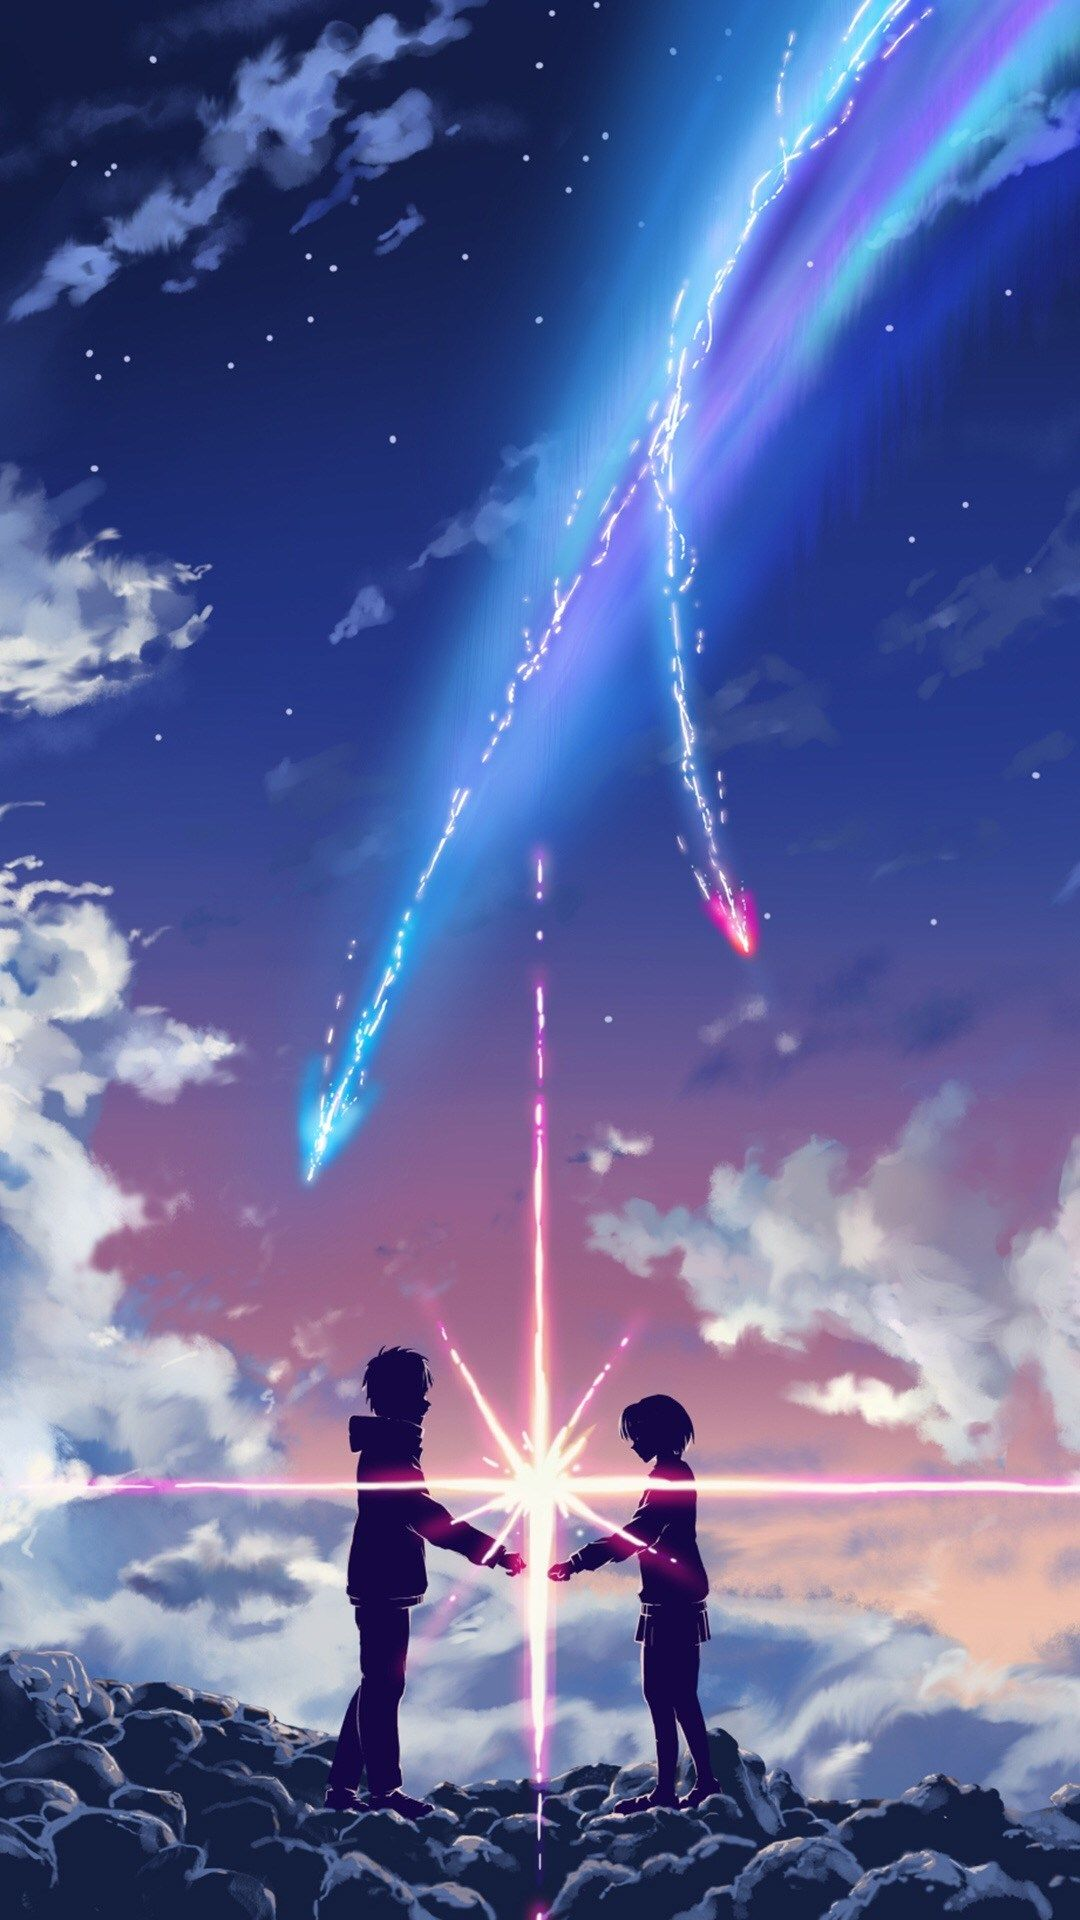 Your Name Movie Touching Through Space Poster #iPhone #6 #wallpaper | iPhone 6~8 Wallpapers